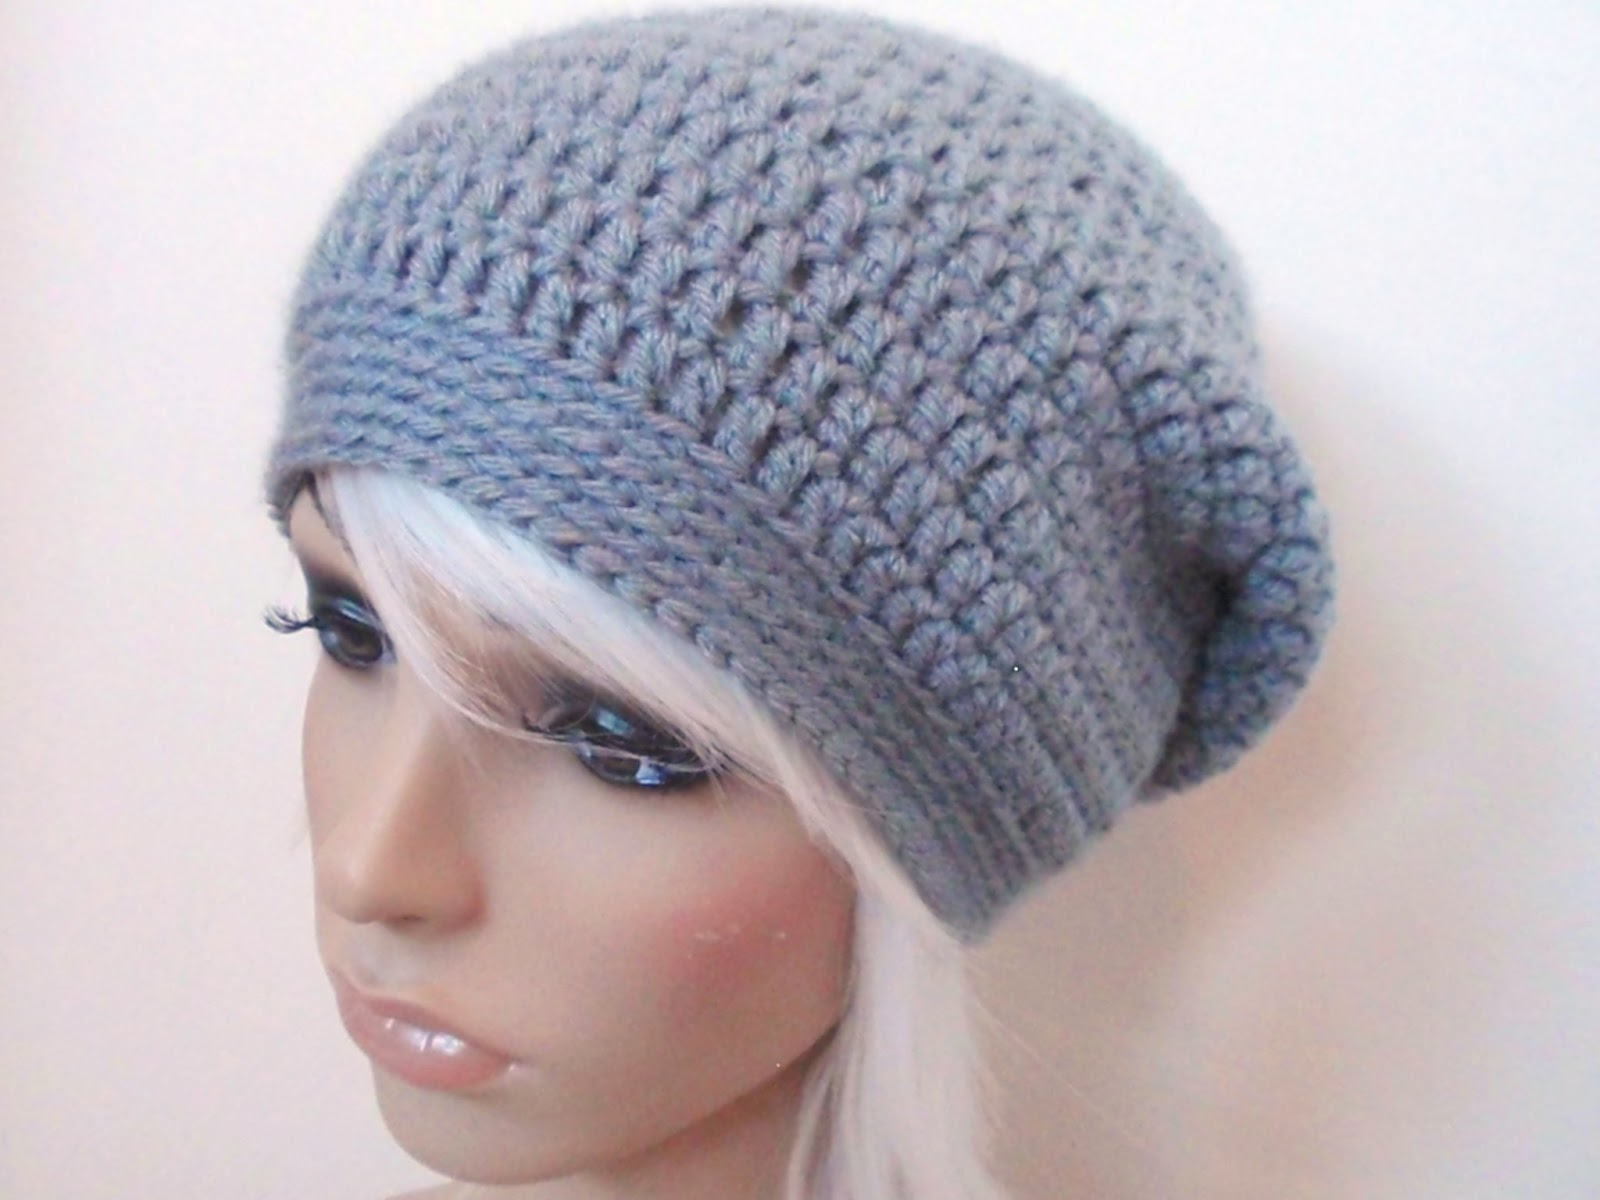 Crochet Patterns Slouchy Beanie : ... .comJenn Likes Yarn - The Knit and Crochet Blog: free crochet pattern